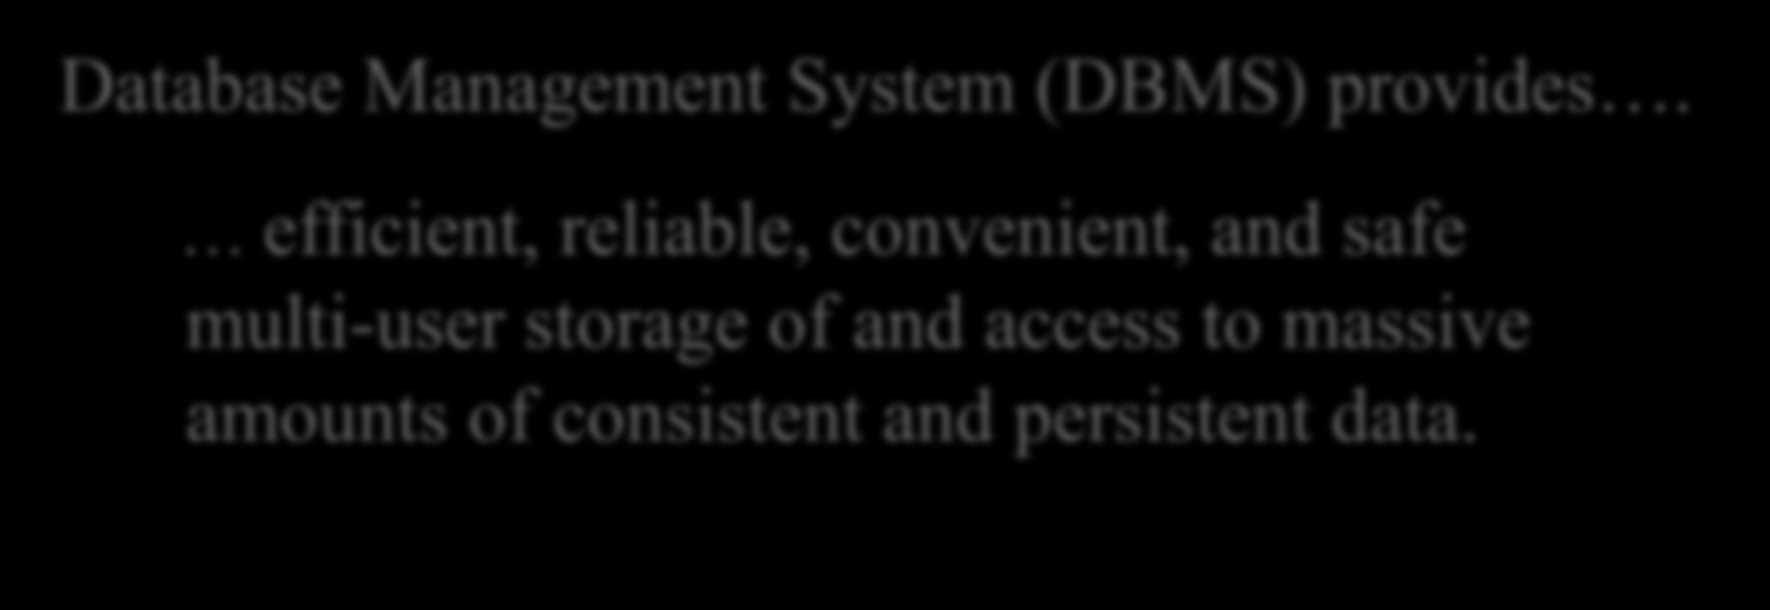 What does DBMS Do Well Database Management System (DBMS) provides.